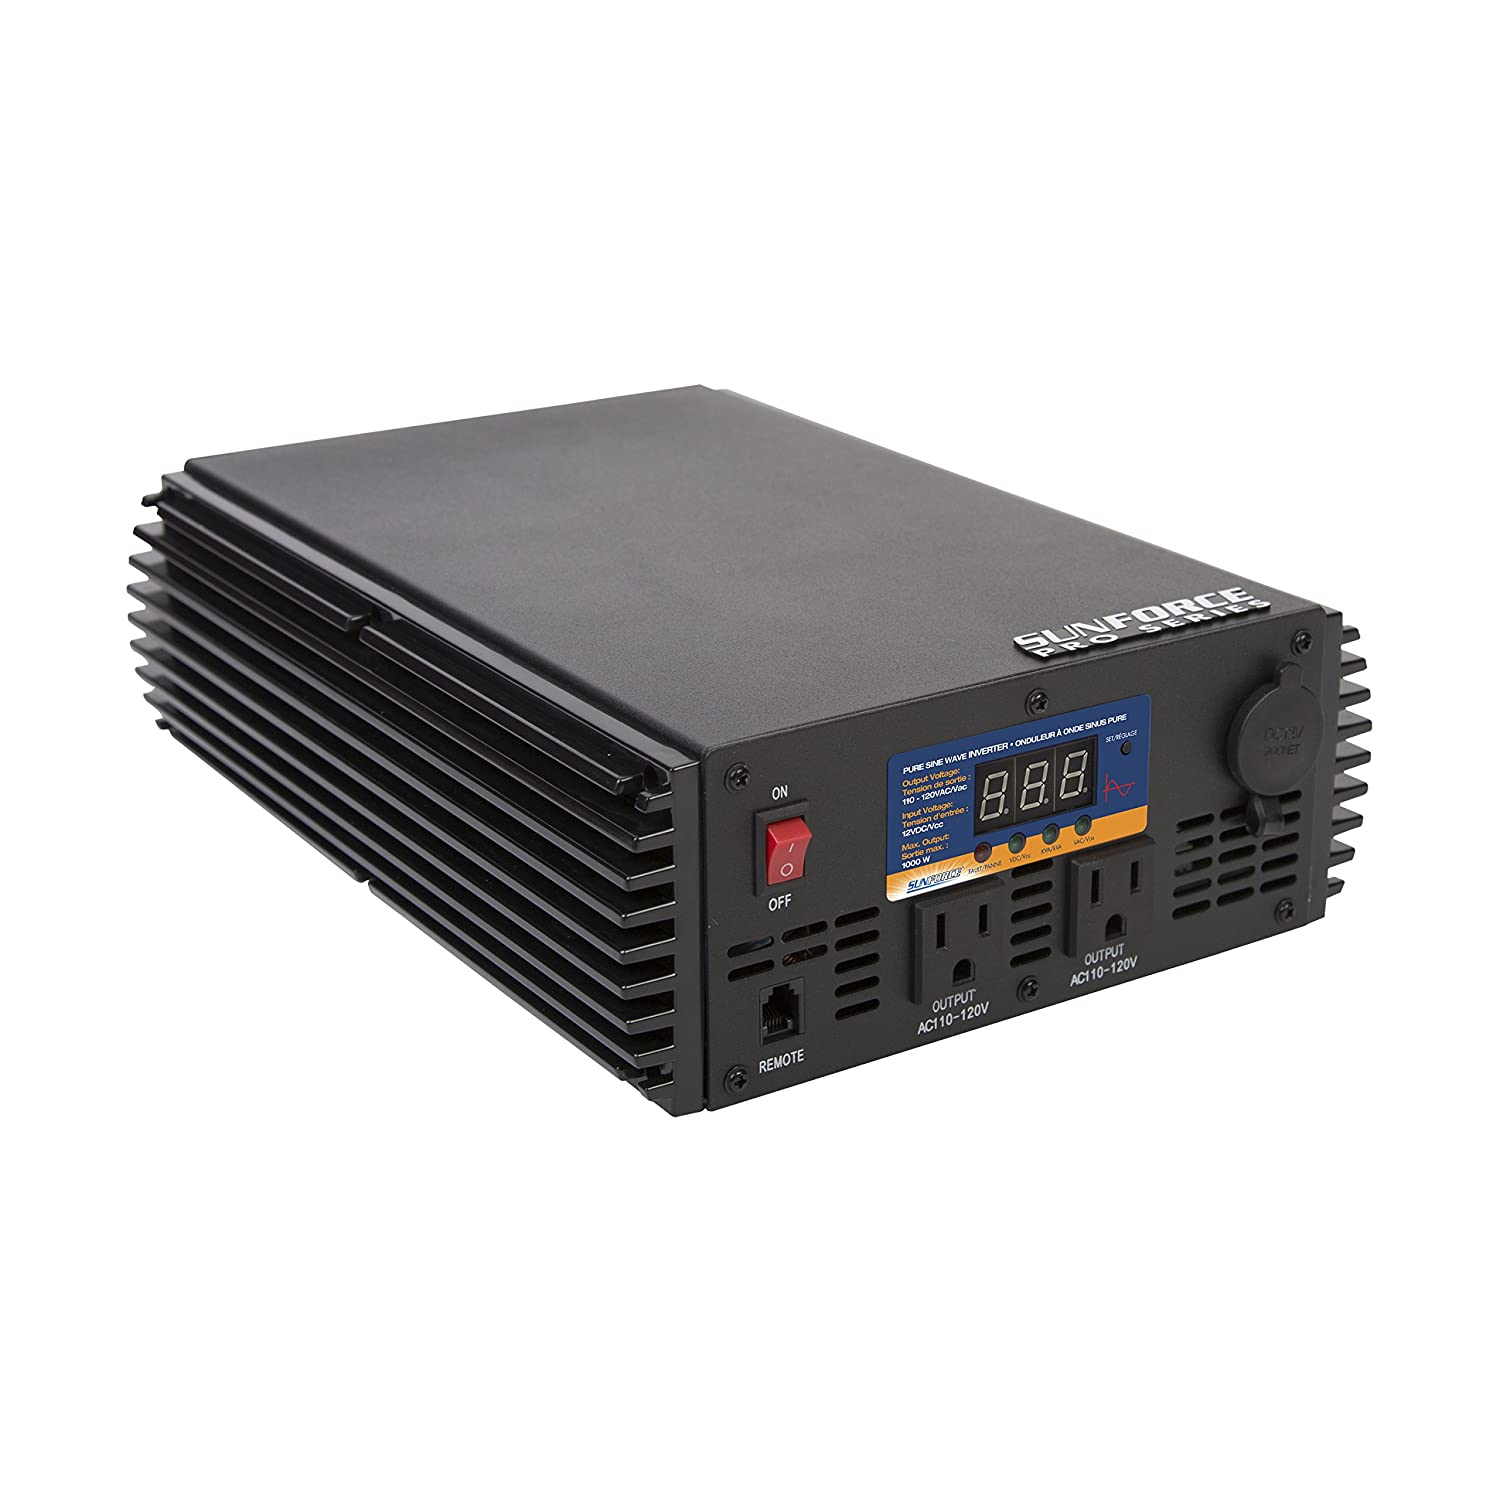 Sunforce 11240 1000 Watt Pure Sine Wave Inverter With Design Modified Code For Remote Control Automotive